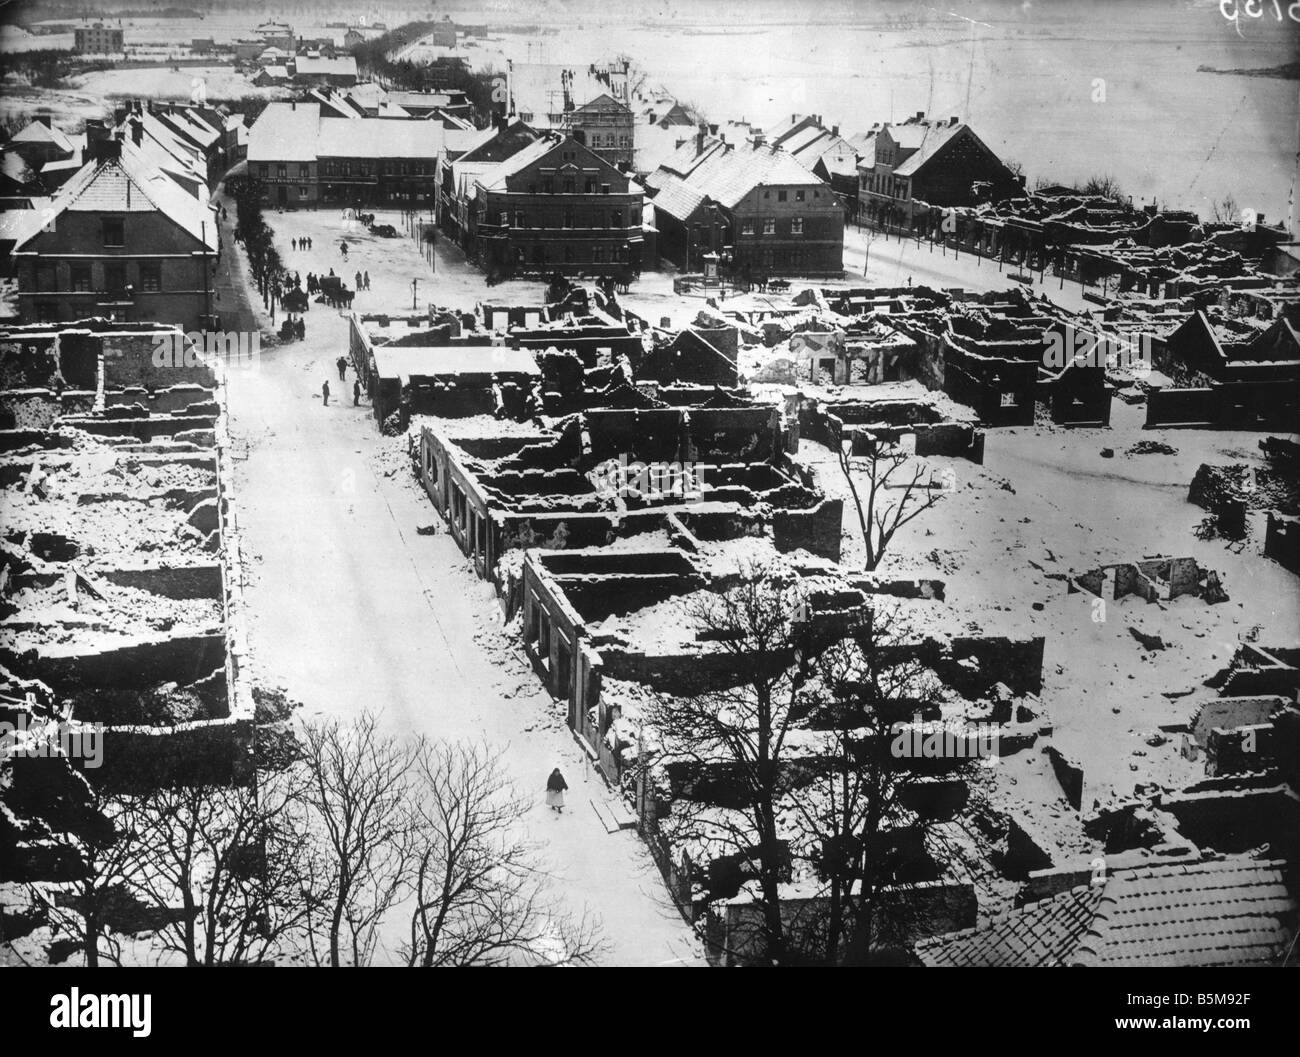 2 G55 O1 1914 14 WWI Destruction in Gerdauen Photo History WWI Eastern Front View of Gerdauen East Prussia after - Stock Image